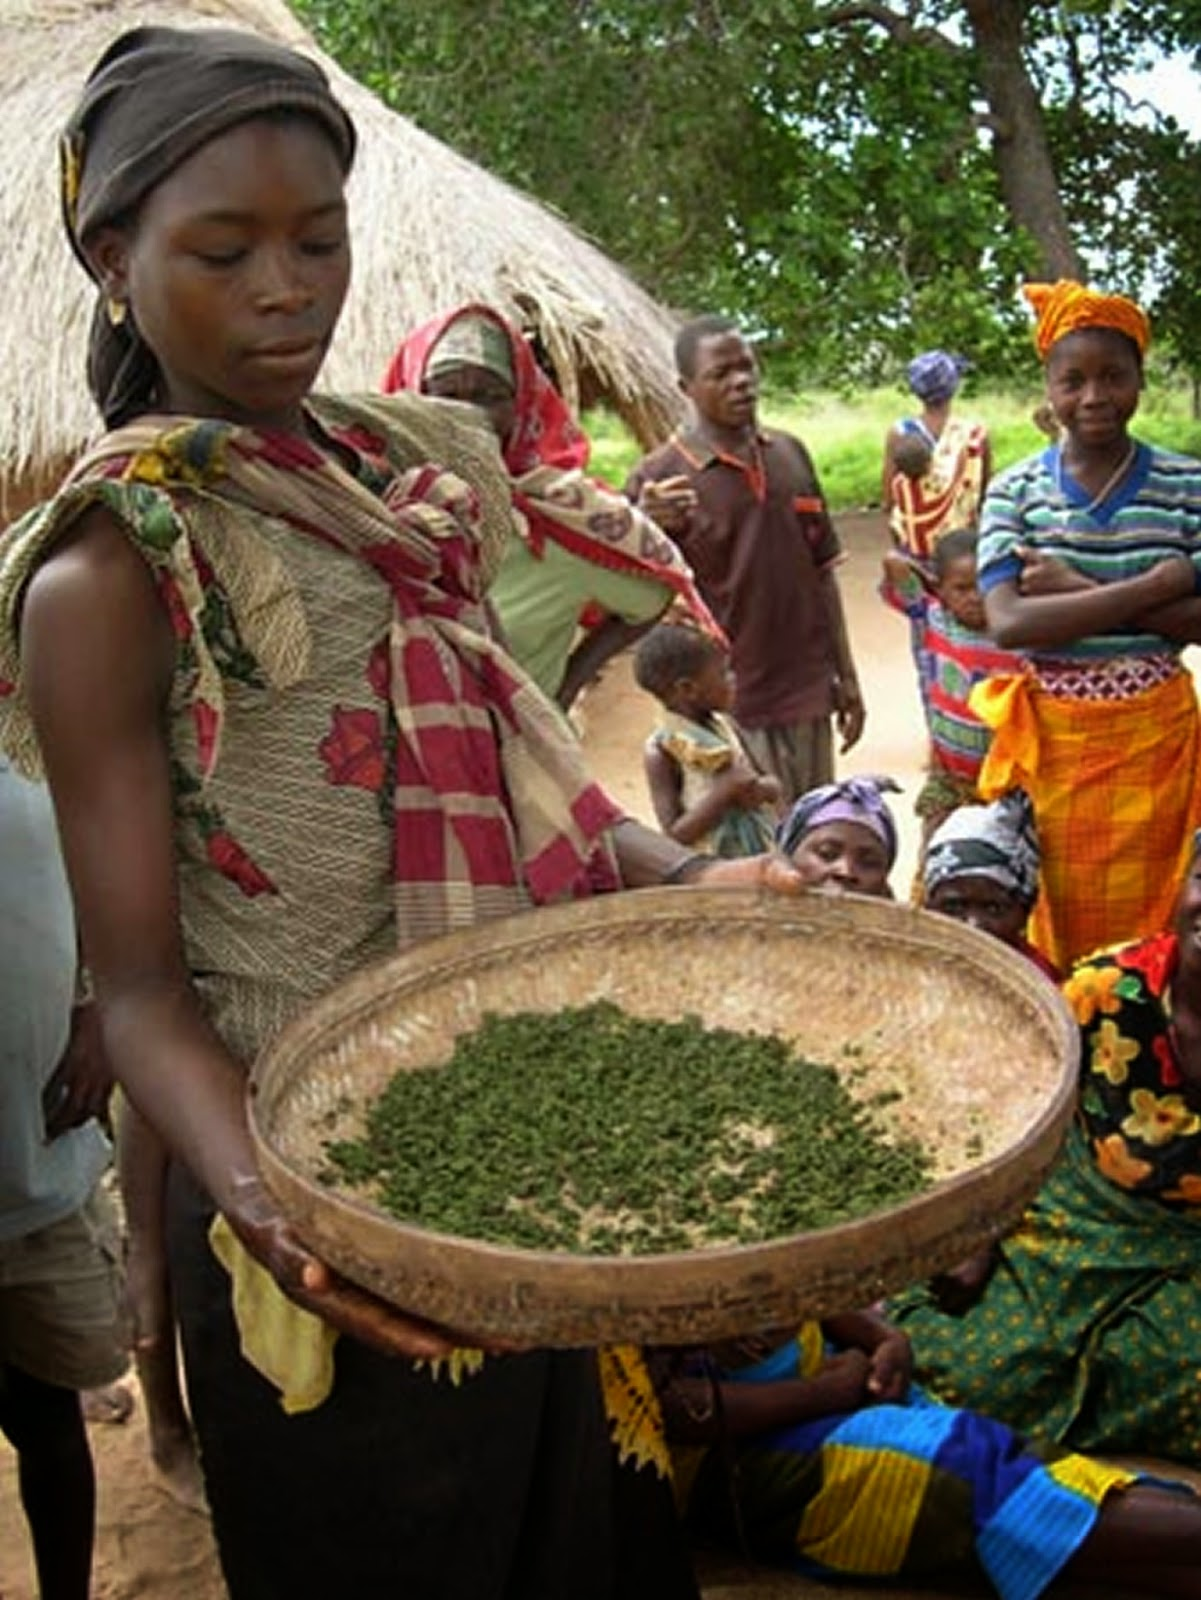 African Women farmers planting seed